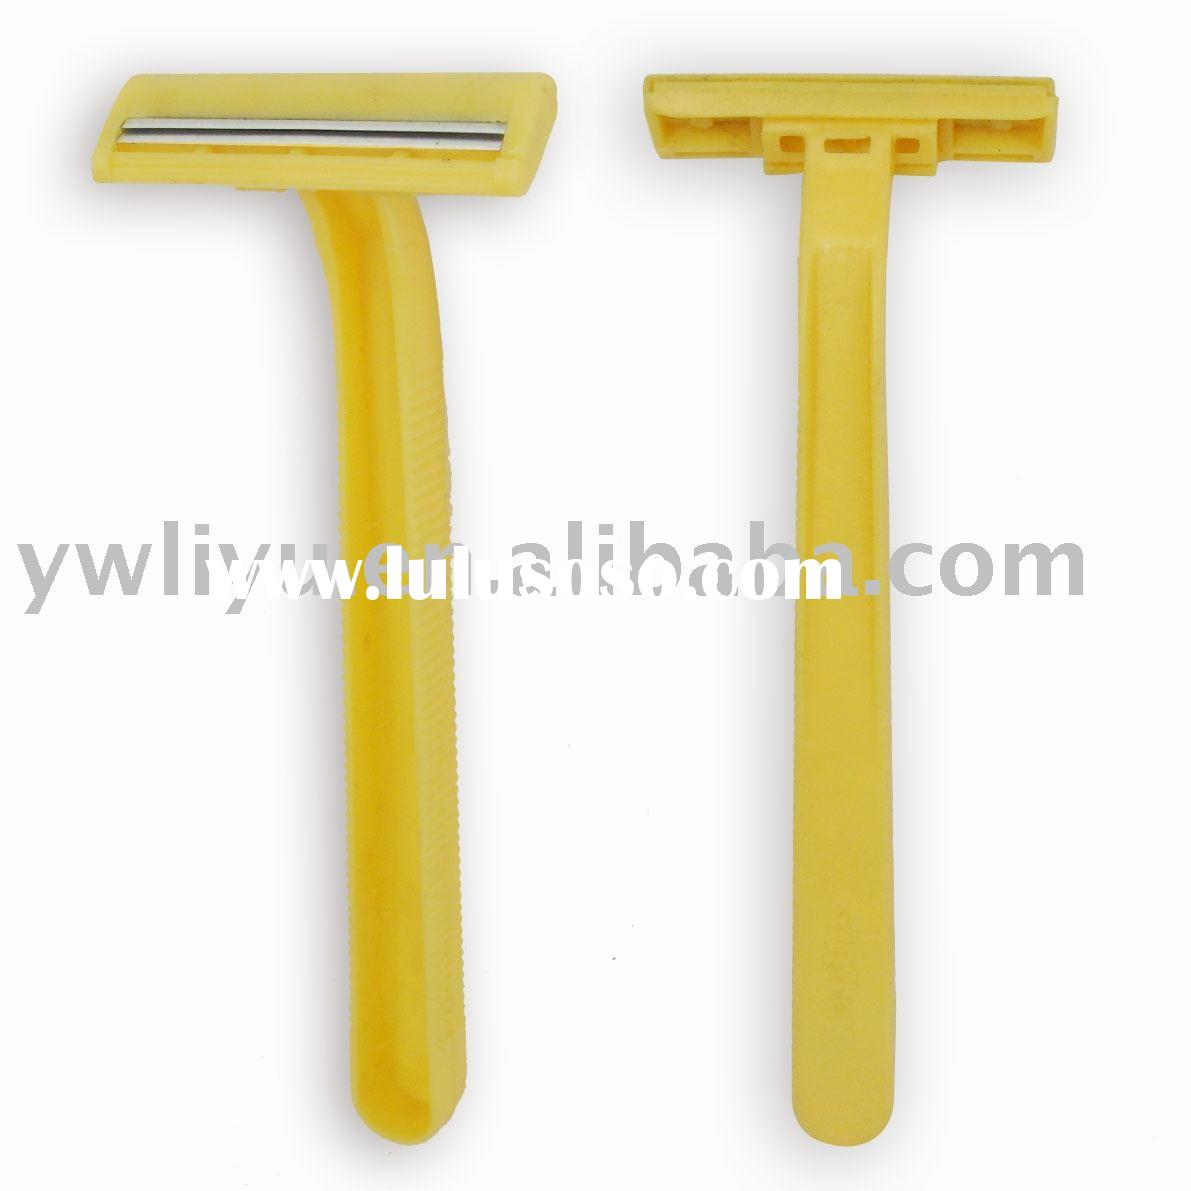 Twin Blade Disposable Razor,razor , hotel razor,twin blade razor